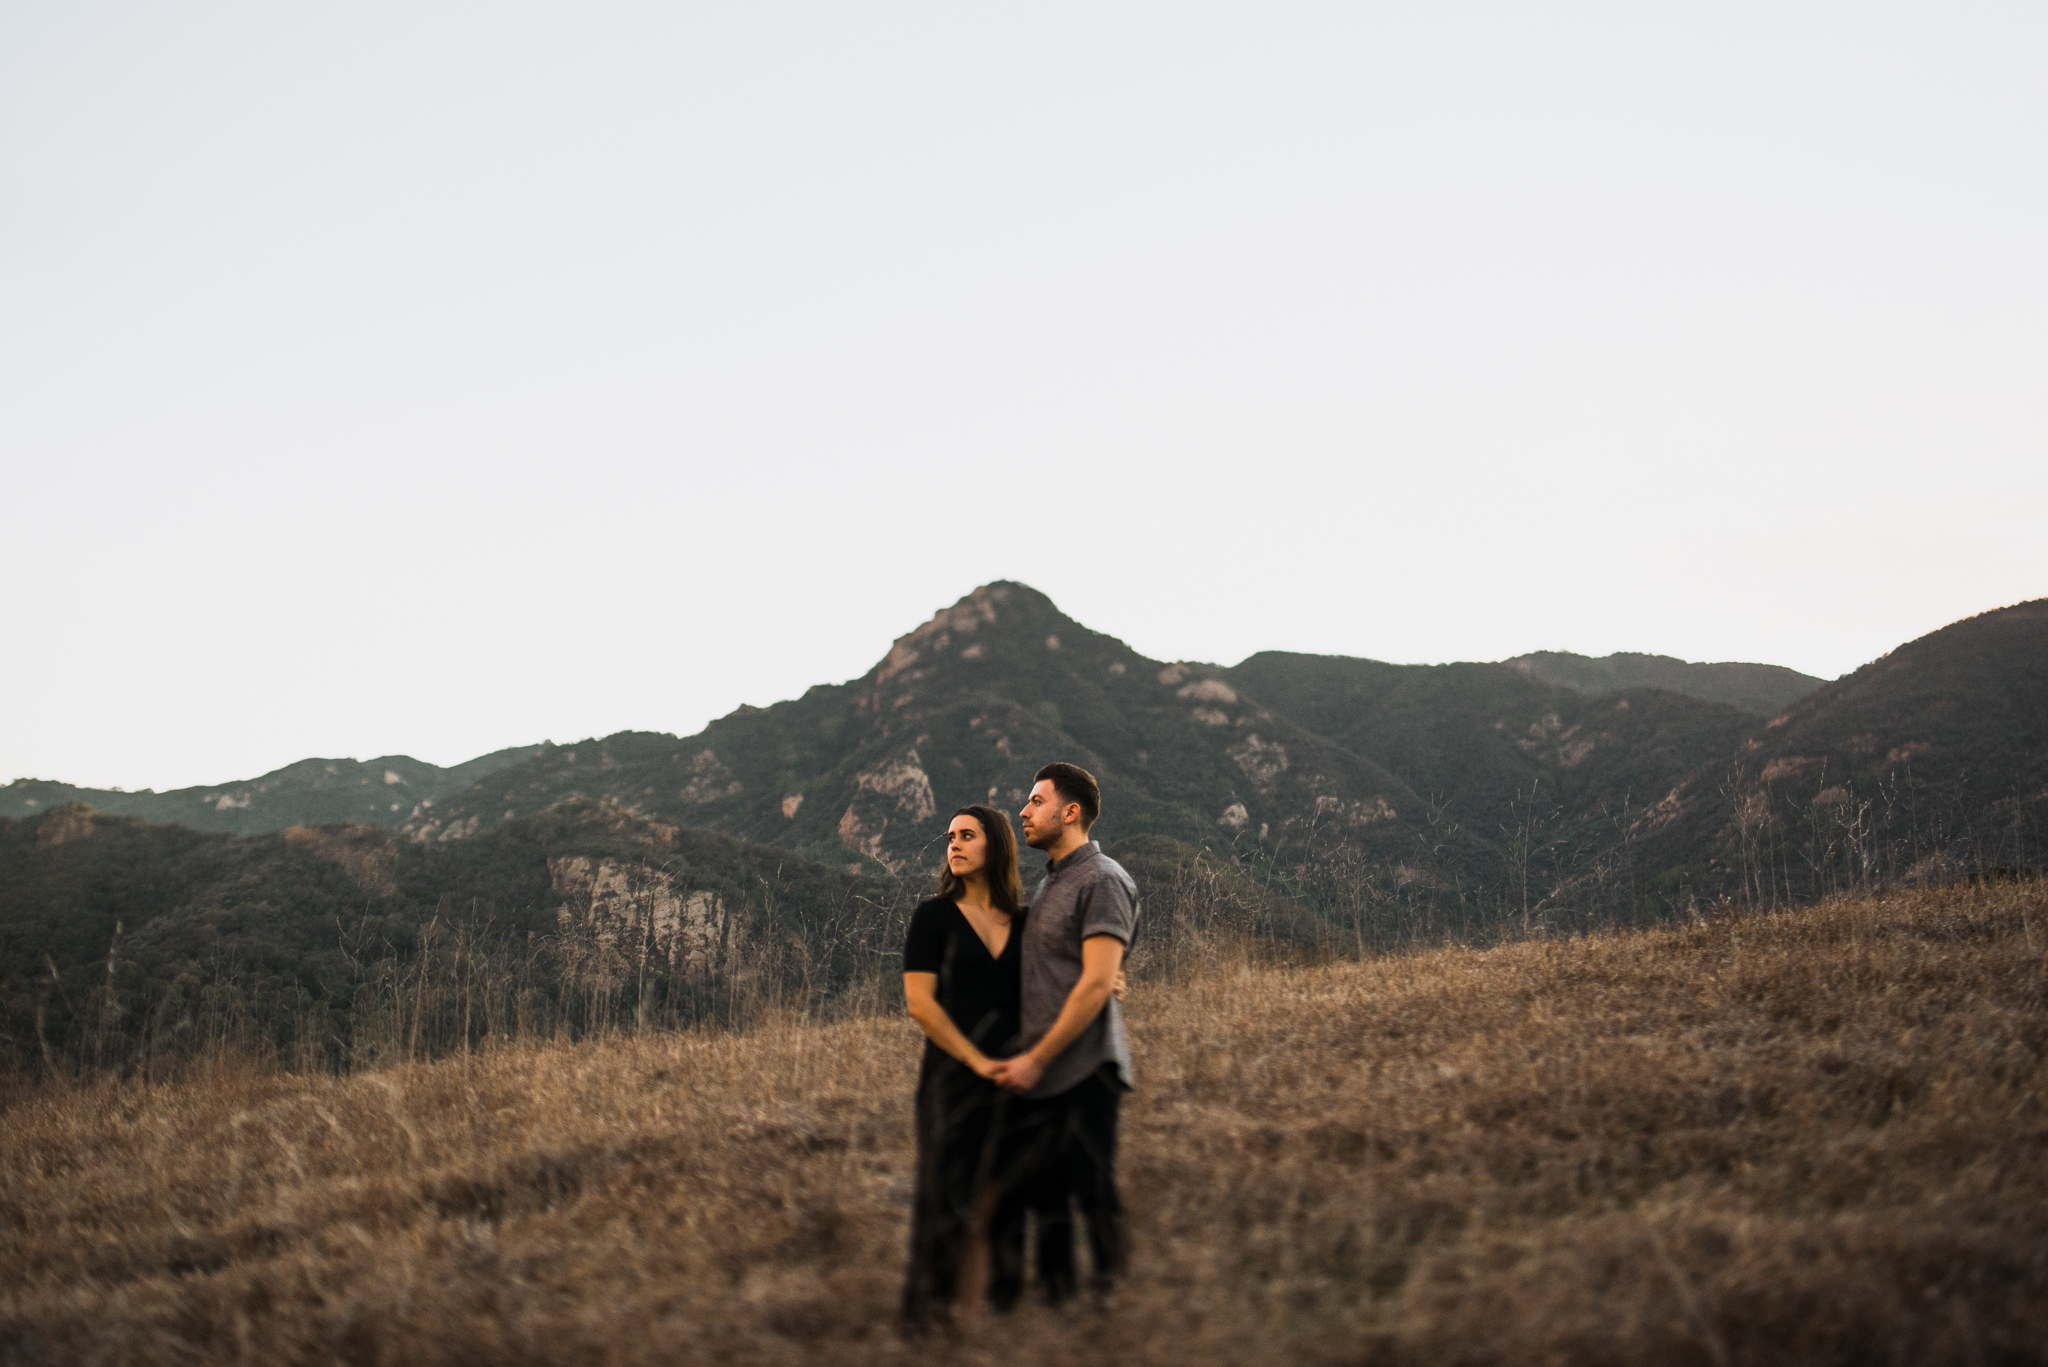 ©Isaiah-&-Taylor-Photography---Malibu-Field-Engagement,-Southern-California-Wedding-Photographer-023.jpg